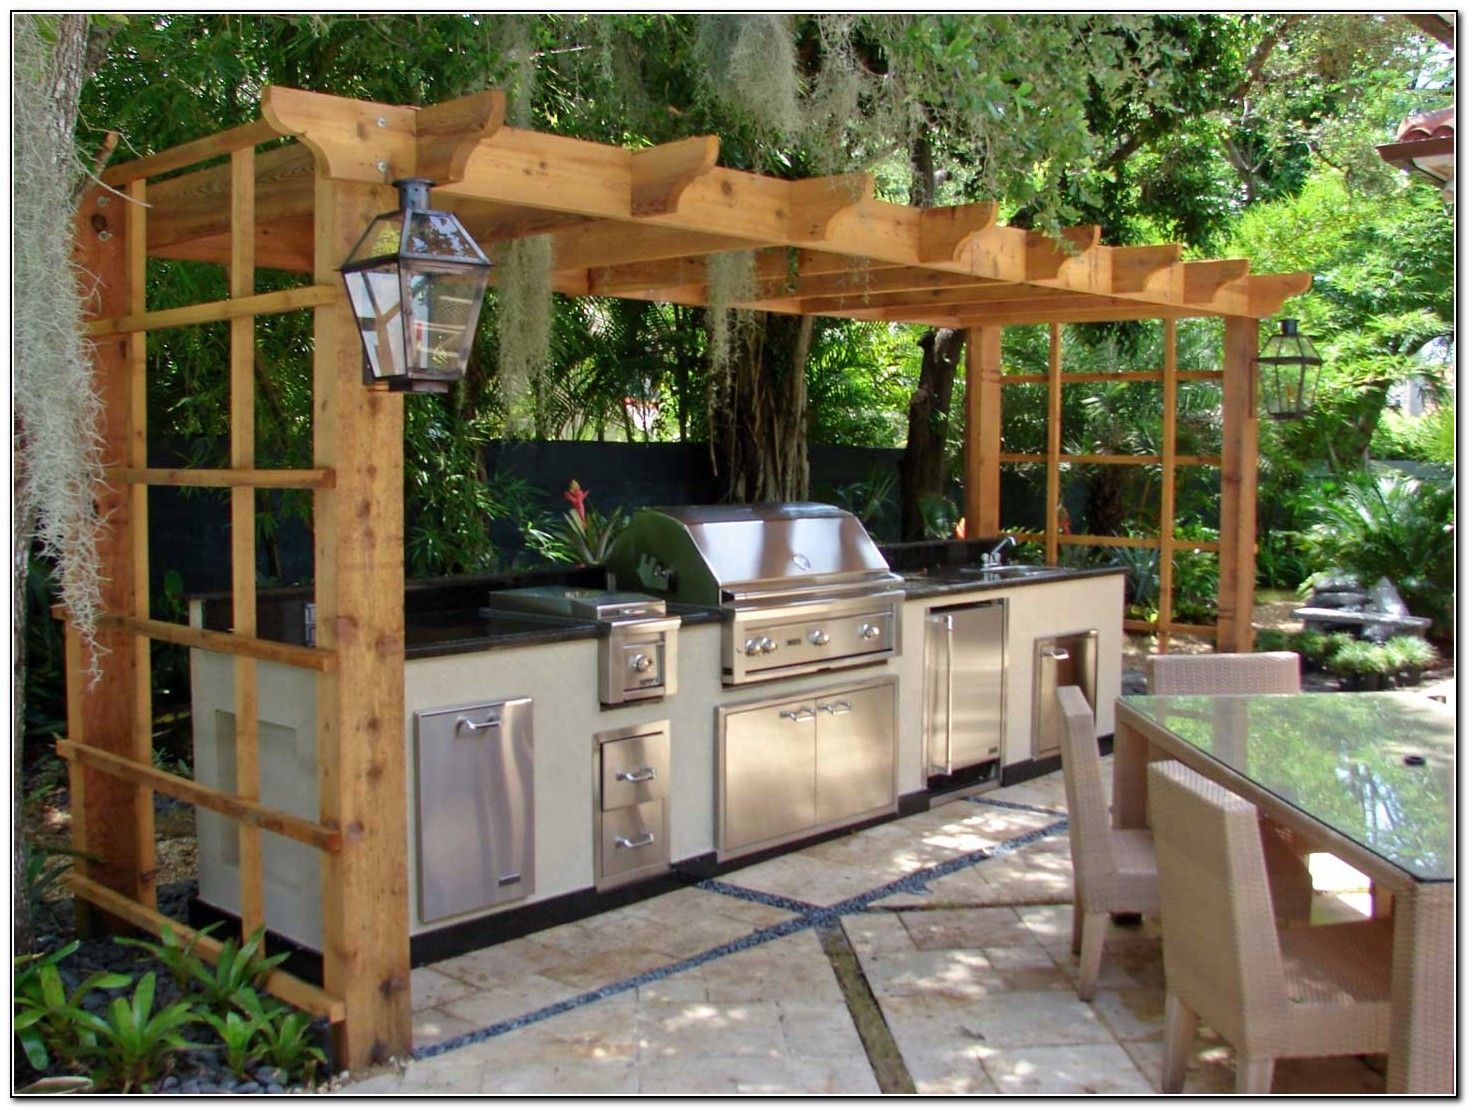 Outdoor Kitchens Uk Google Search Small Outdoor Kitchens Outdoor Kitchen Design Outdoor Kitchen Plans